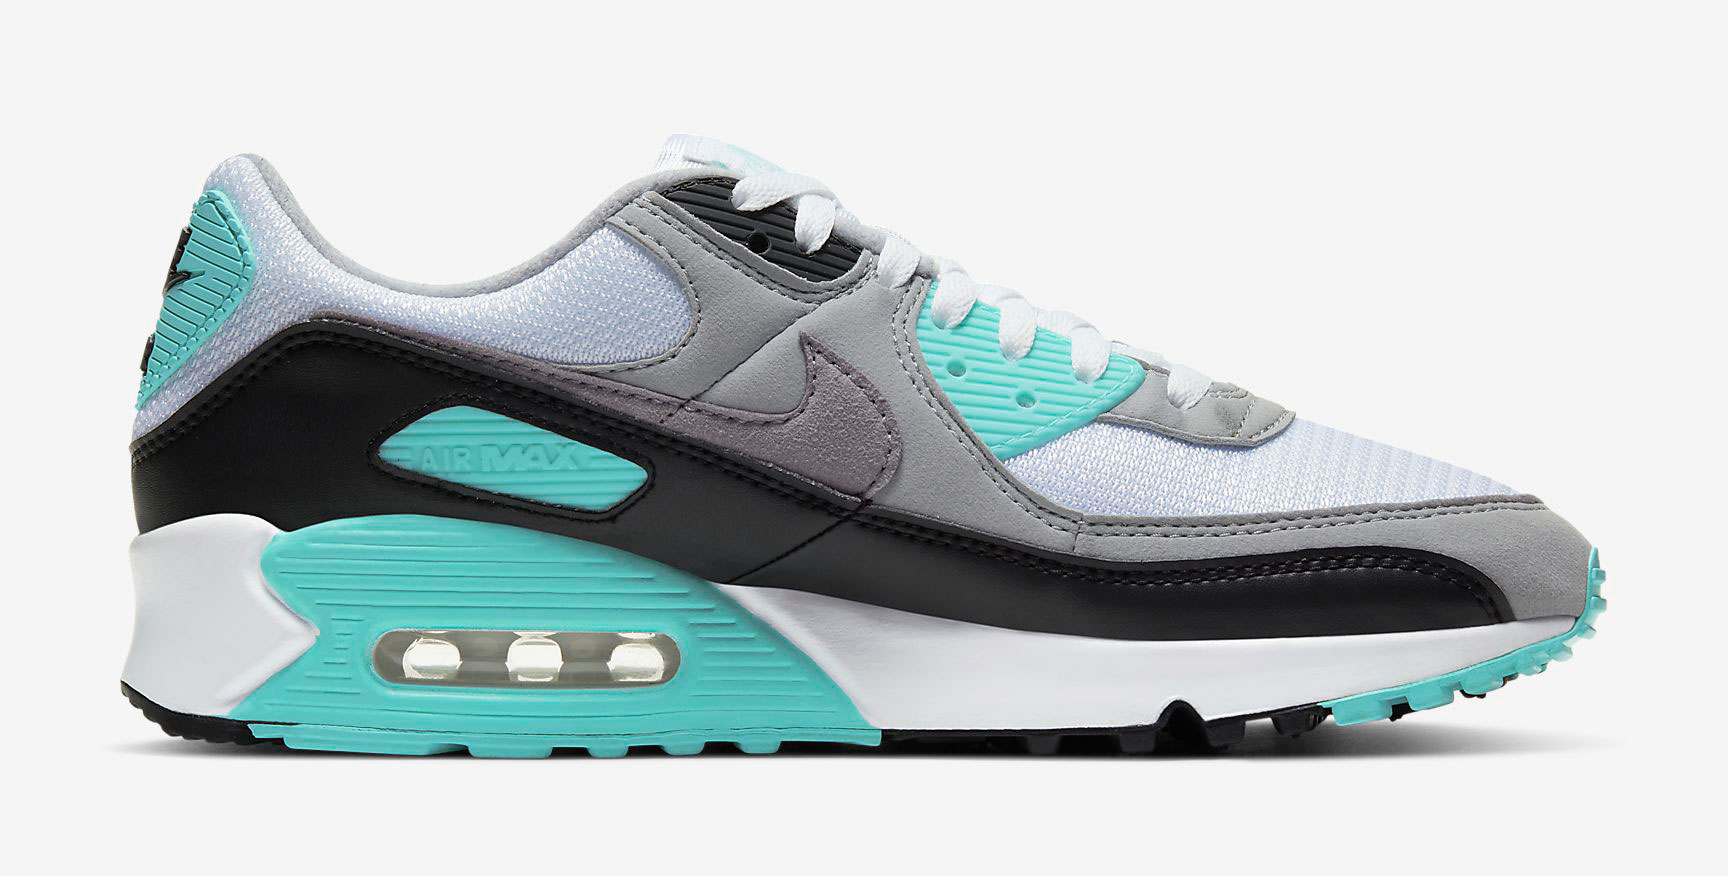 nike-air-max-90-hyper-turquoise-release-date-price-3